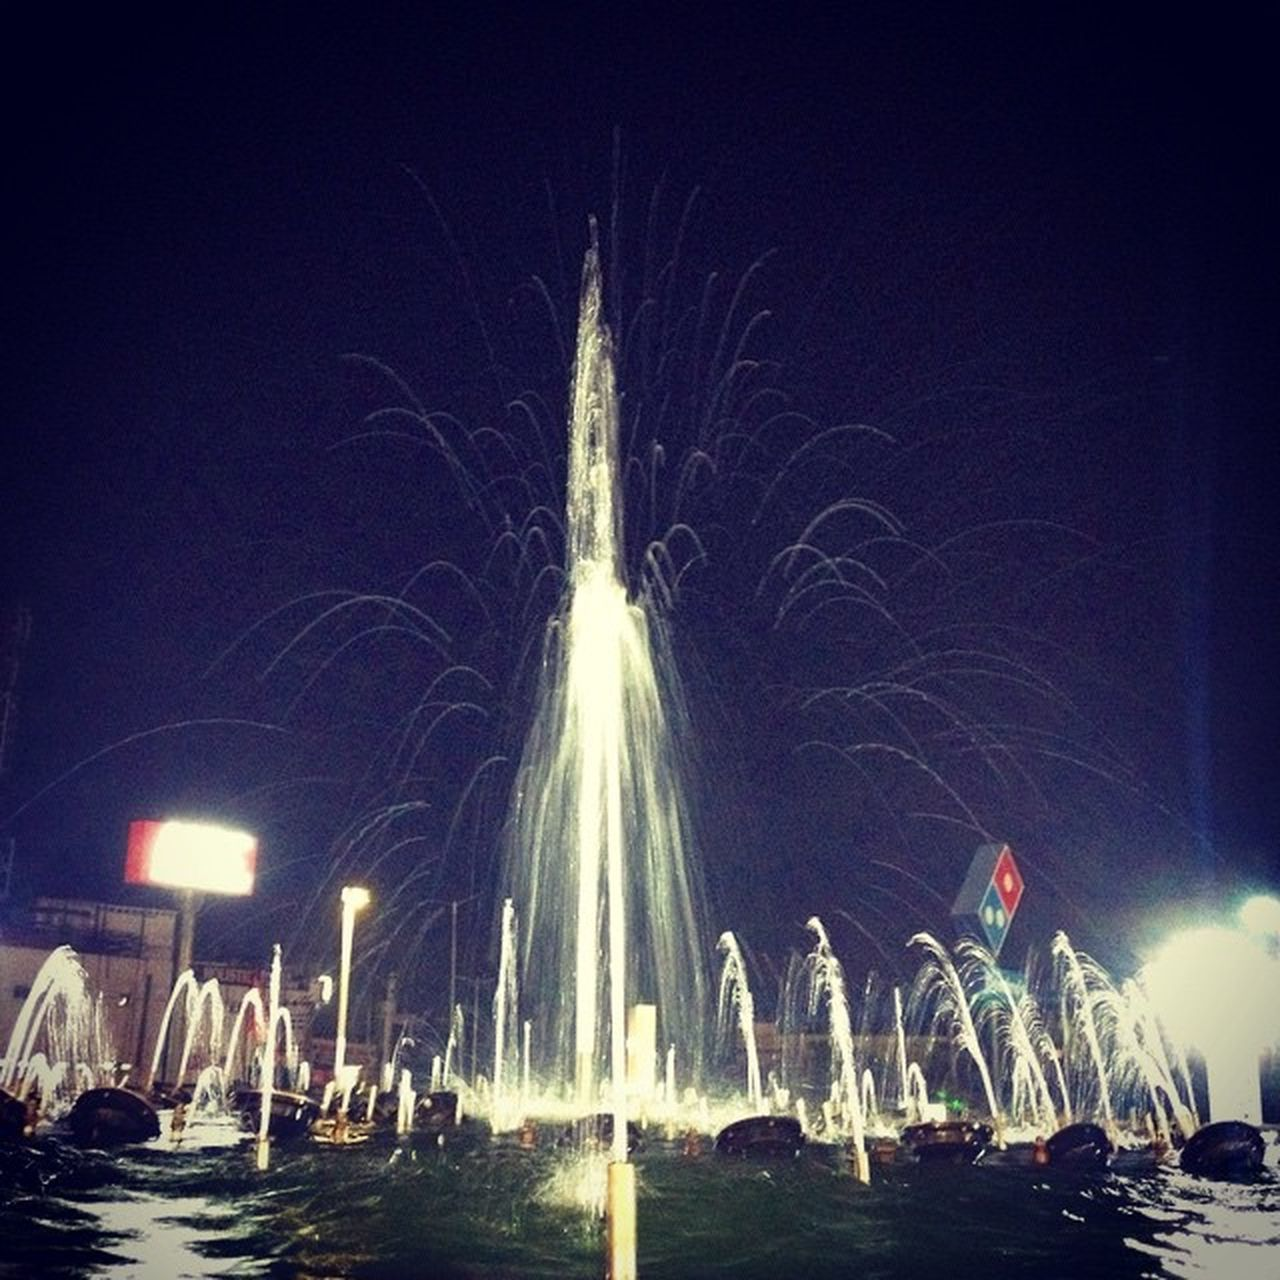 Boom !! Instapic Fountain Shot Instalove Instashot Instaclick Instadaily Instagrammers Weekend Midnight Iphoneonly Iphonegraphy Iphonegraphers Travel Traveller Travelling TBT  Followme Tagsforlikes Likeforlike Wings Fly Life Dailypic Dailylike throwback amazing awesome